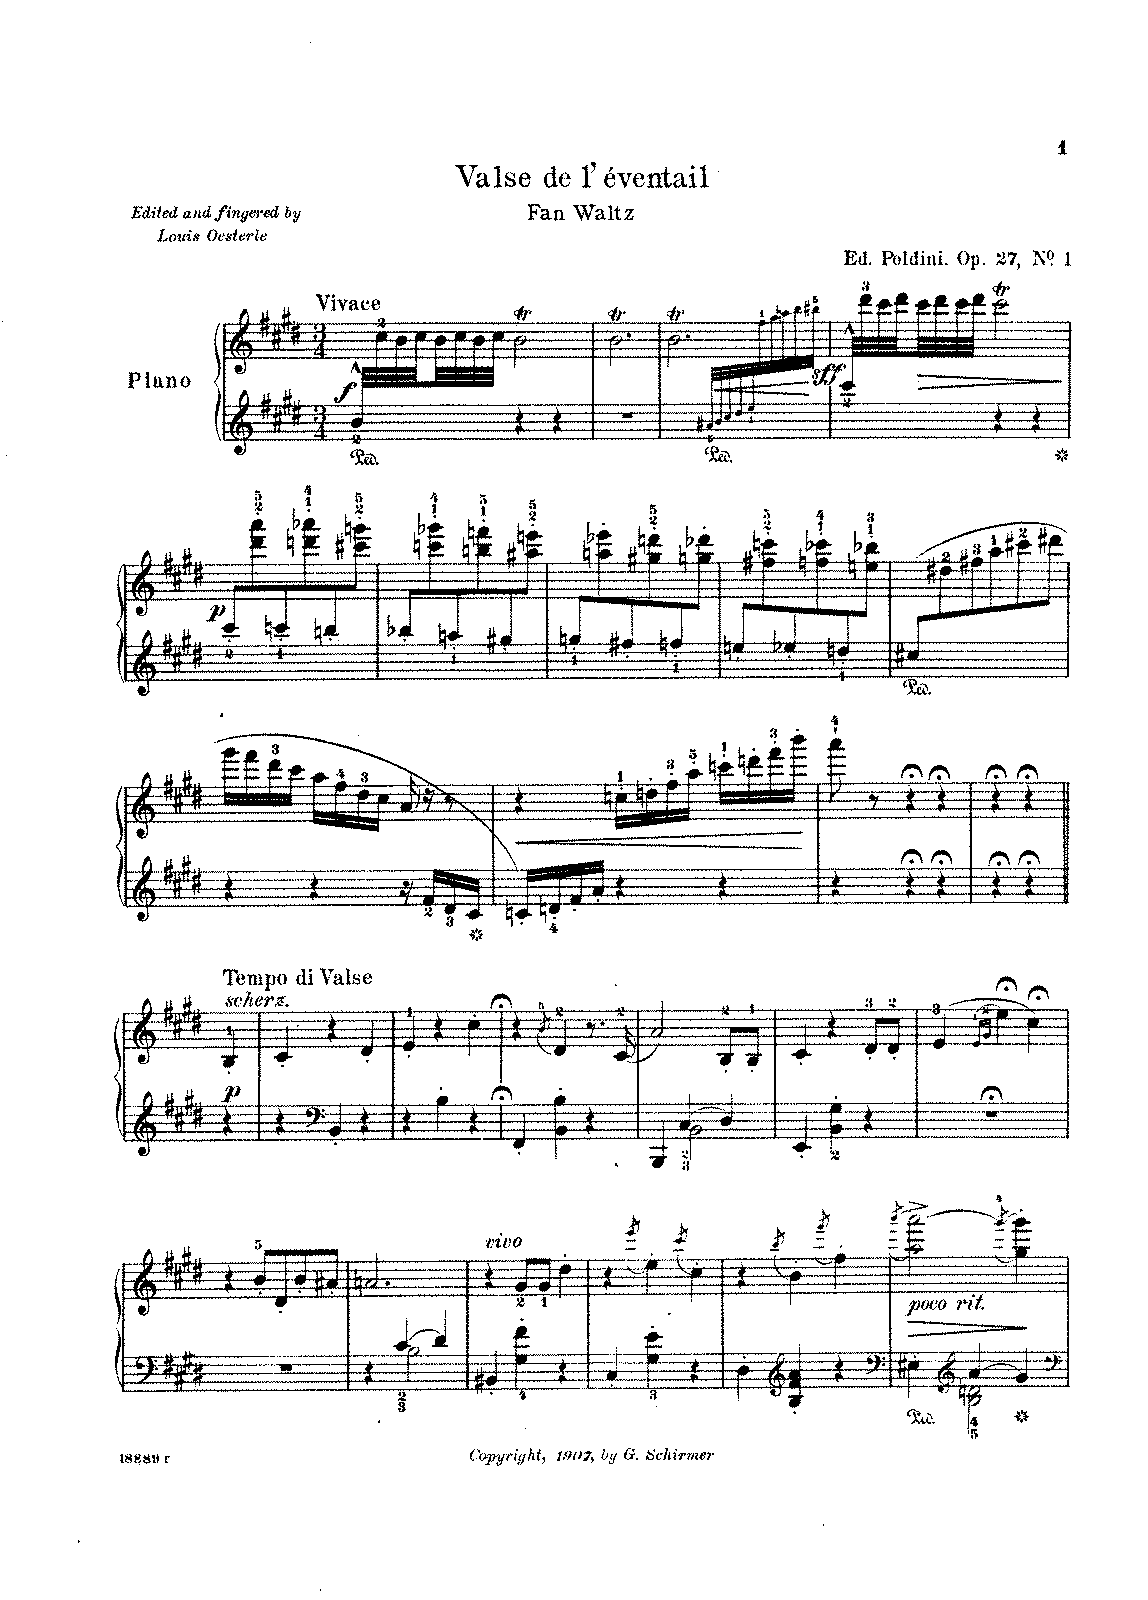 PMLP66324-Poldini - Valse de l'éventail, Op. 27, No. 1 (piano).pdf